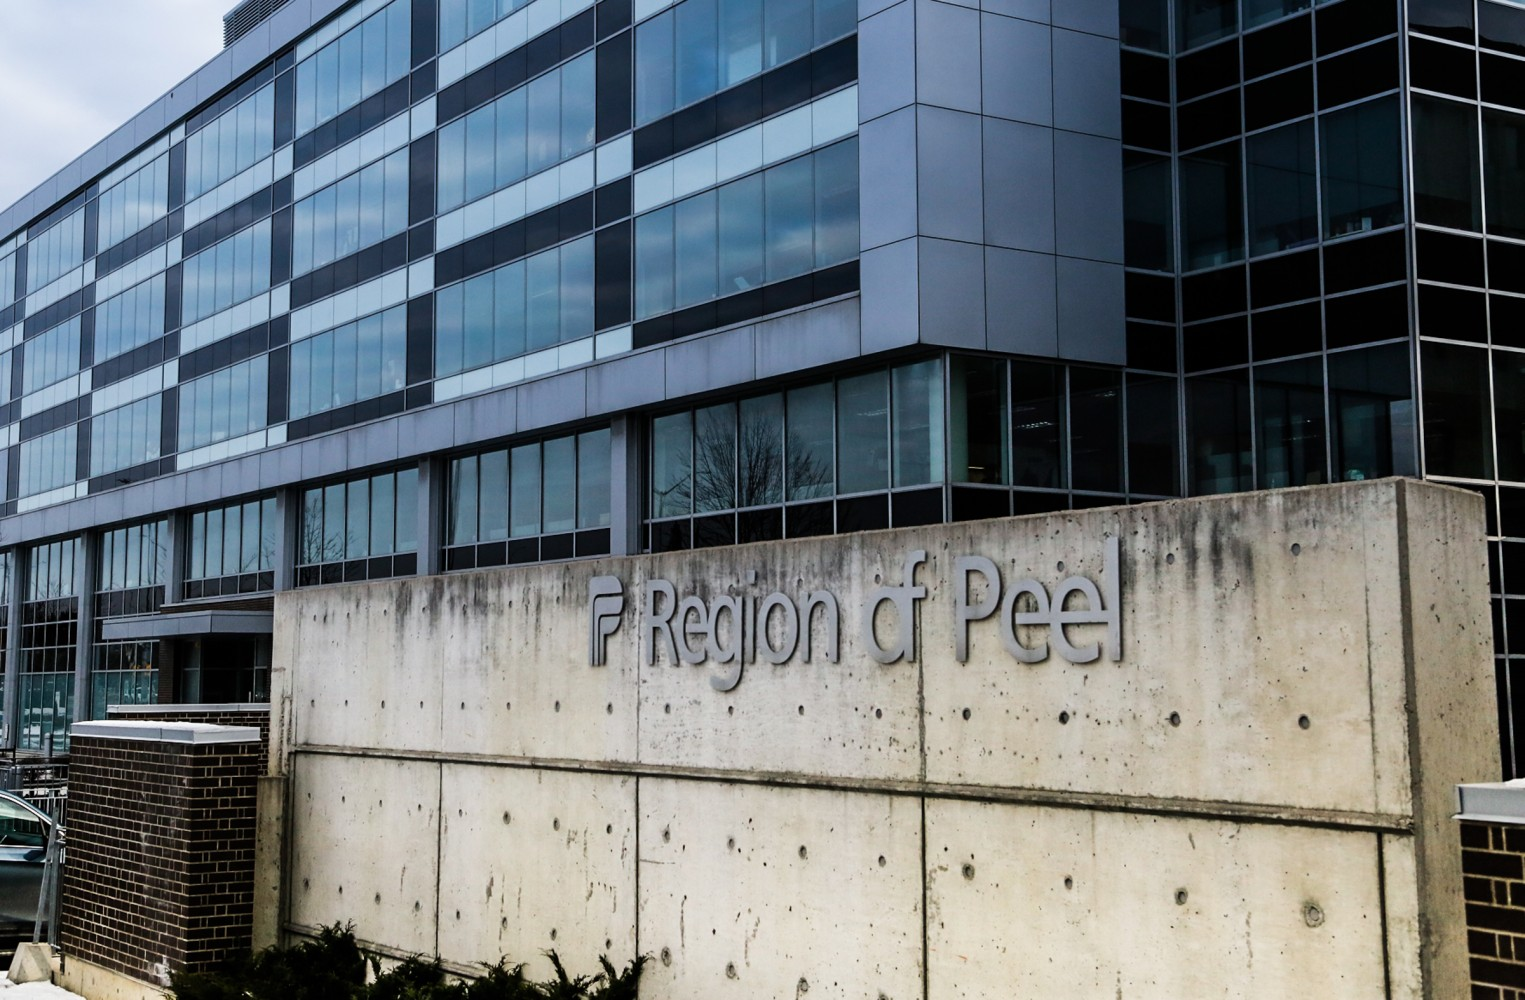 Peel seeks minor tax increase, another big utility hike in 2021 & more money to care for seniors